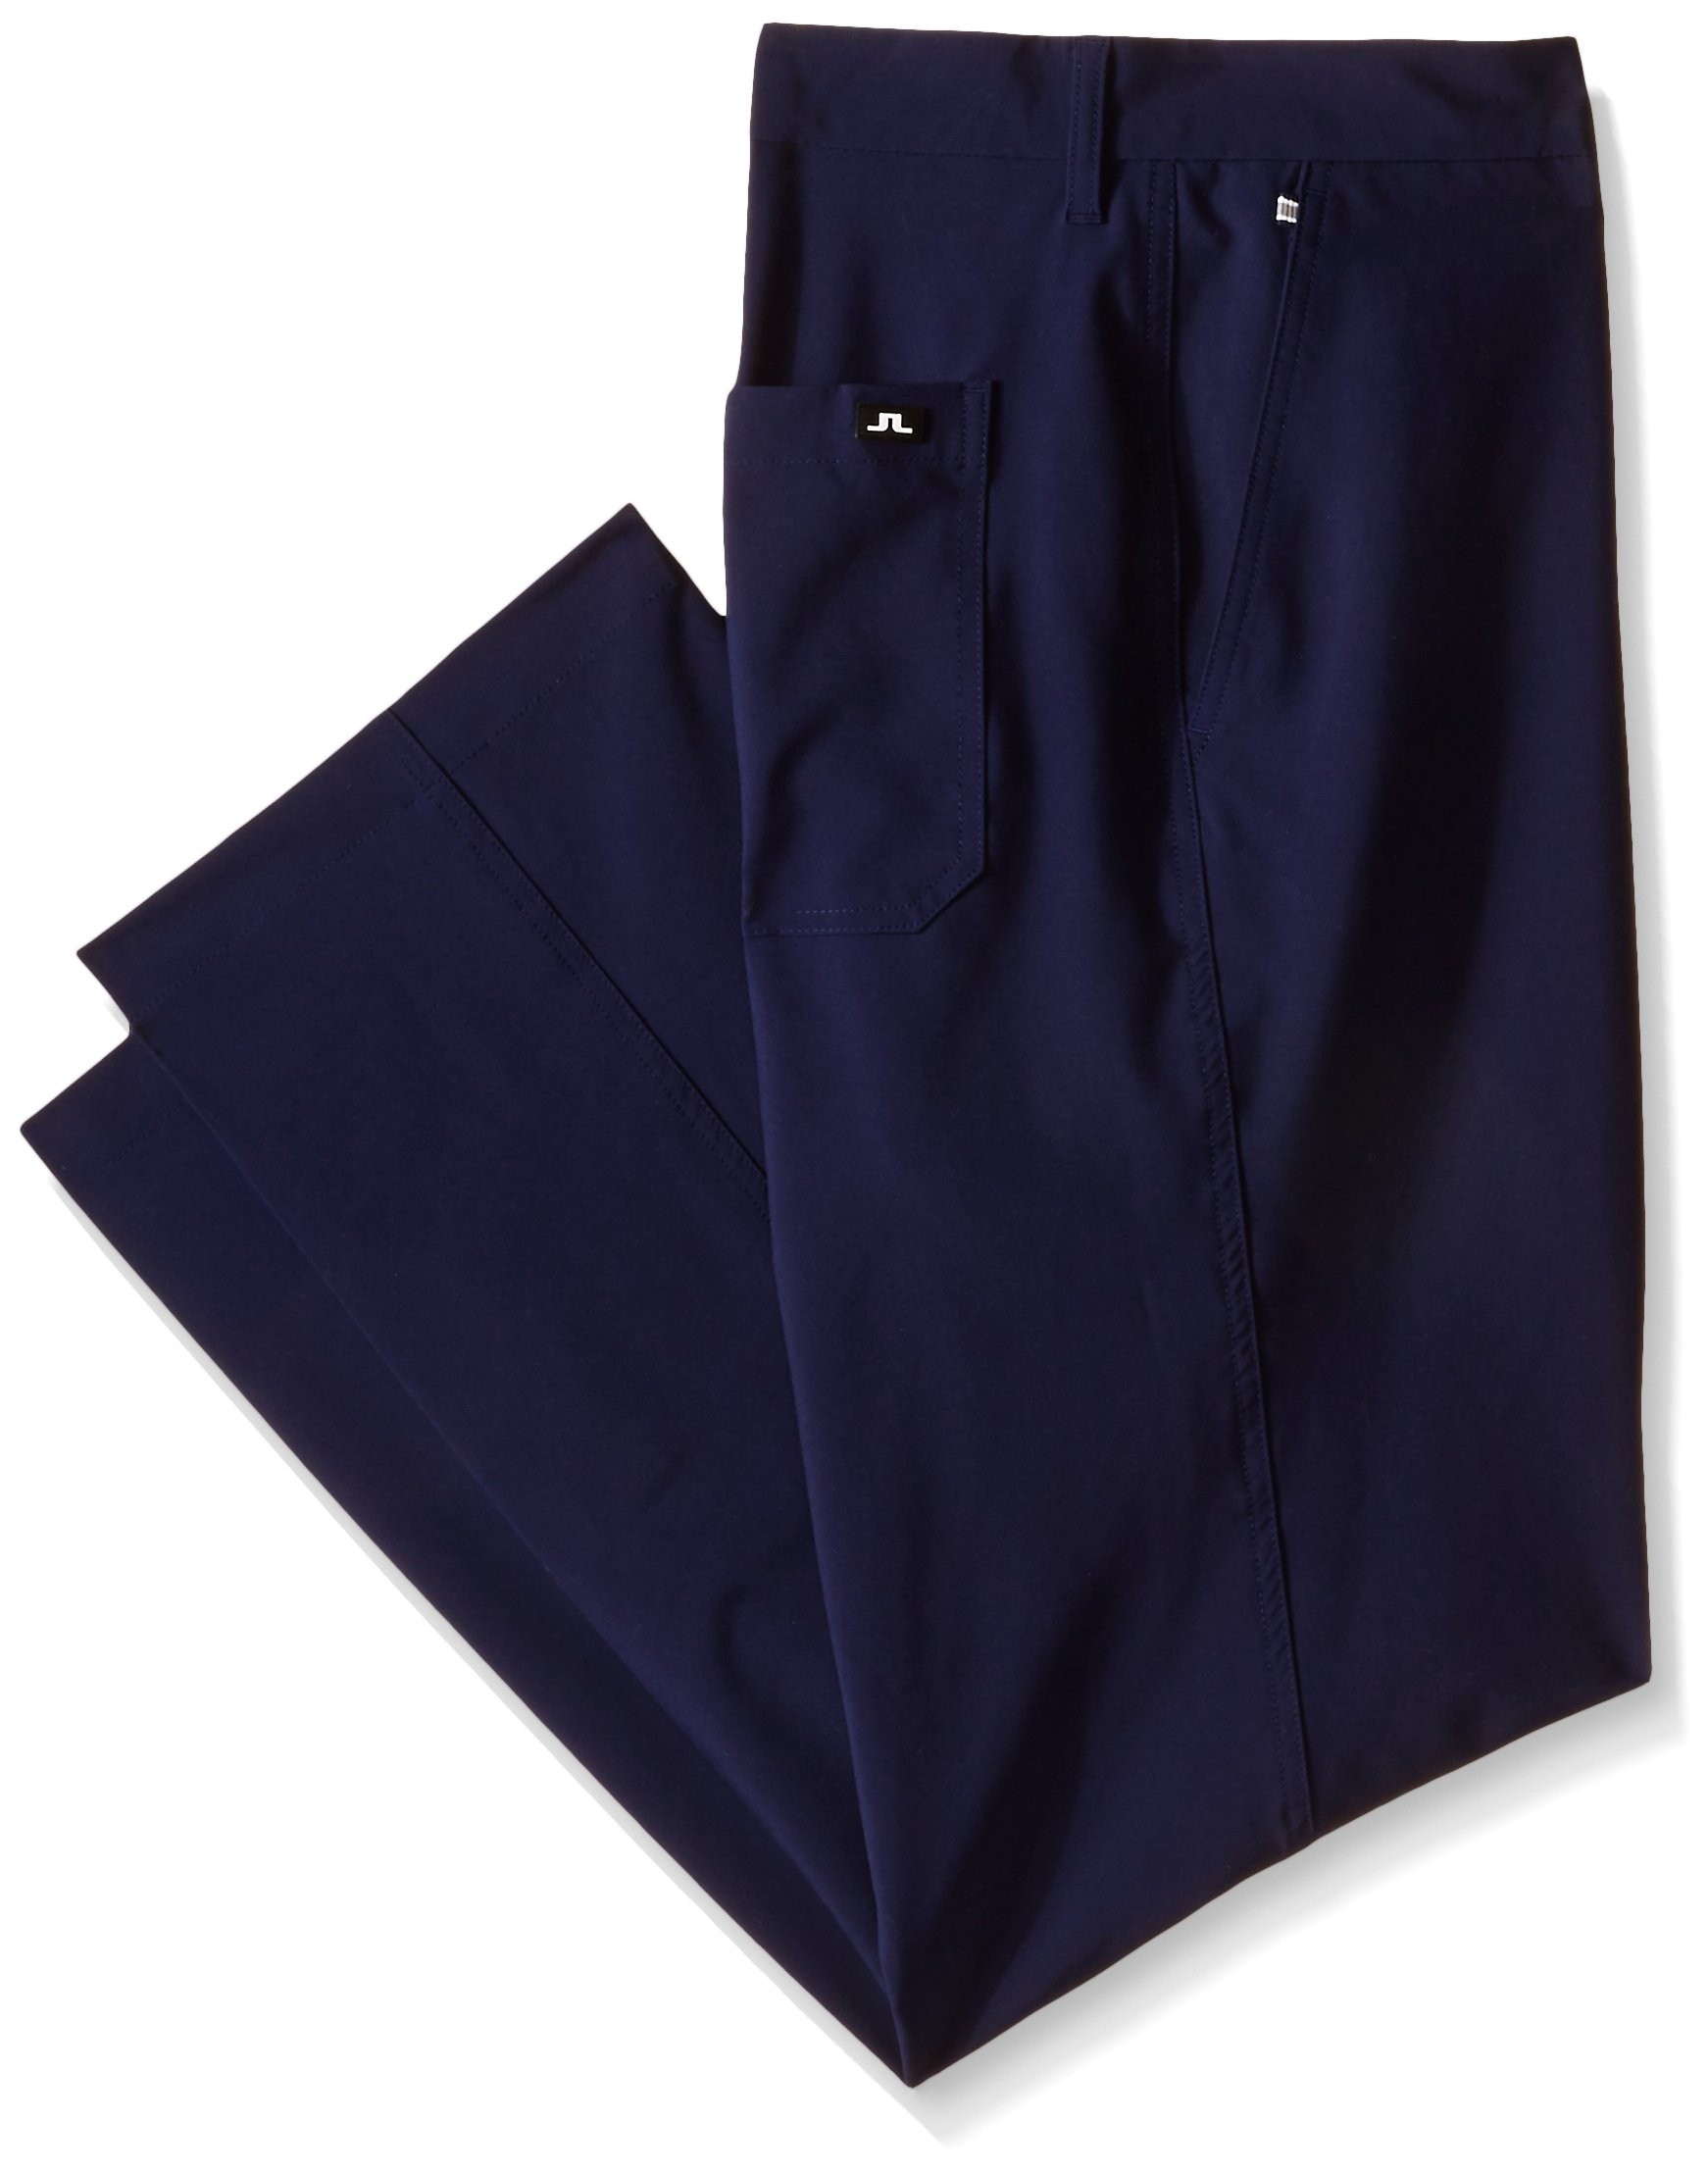 J.Lindeberg Men's M Troon Micro Stretch Golf Pant, Navy Purple, 32x32 by J.Lindeberg (Image #1)